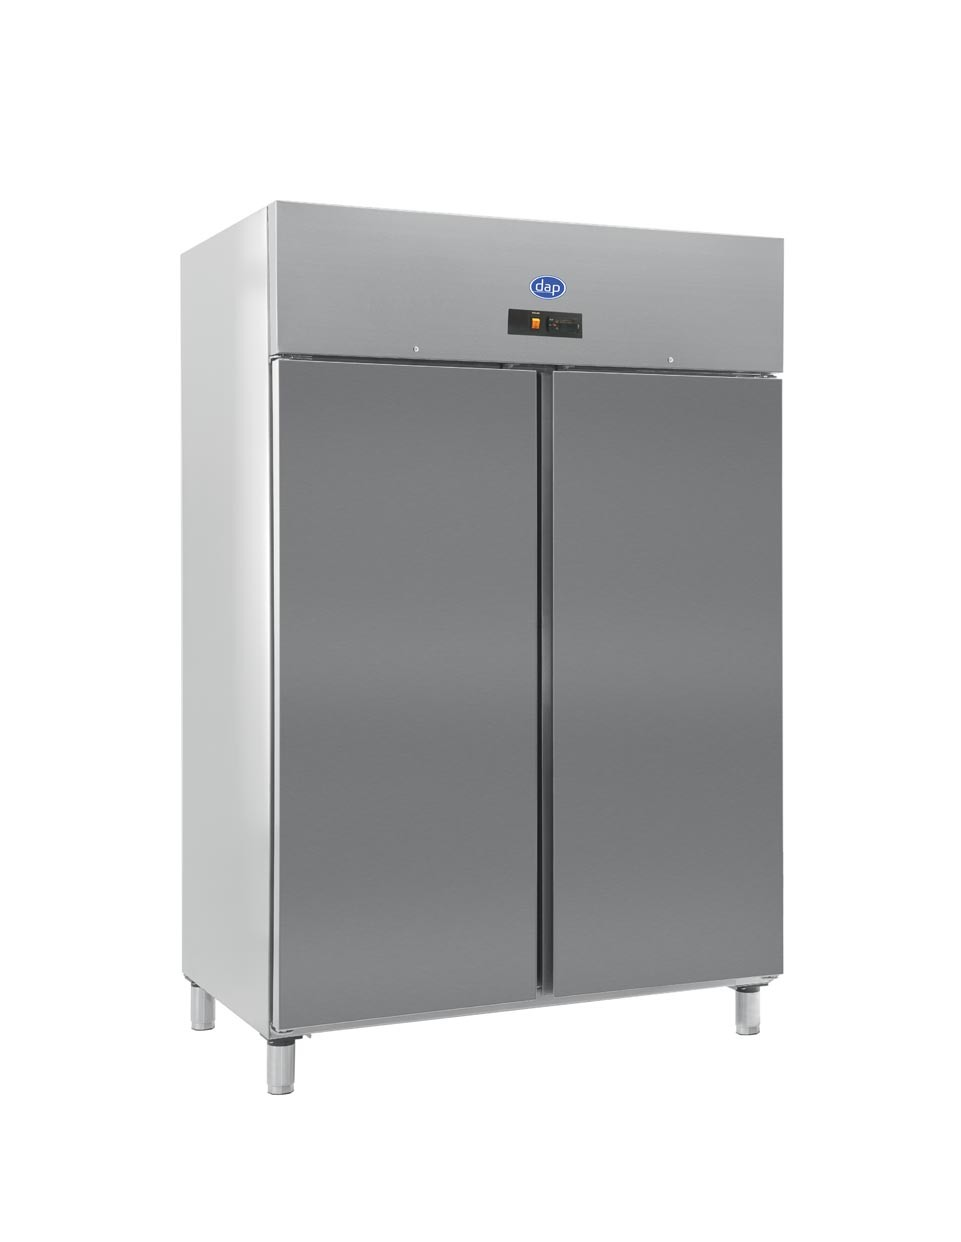 Gastronorme 1400L - GN 2/1